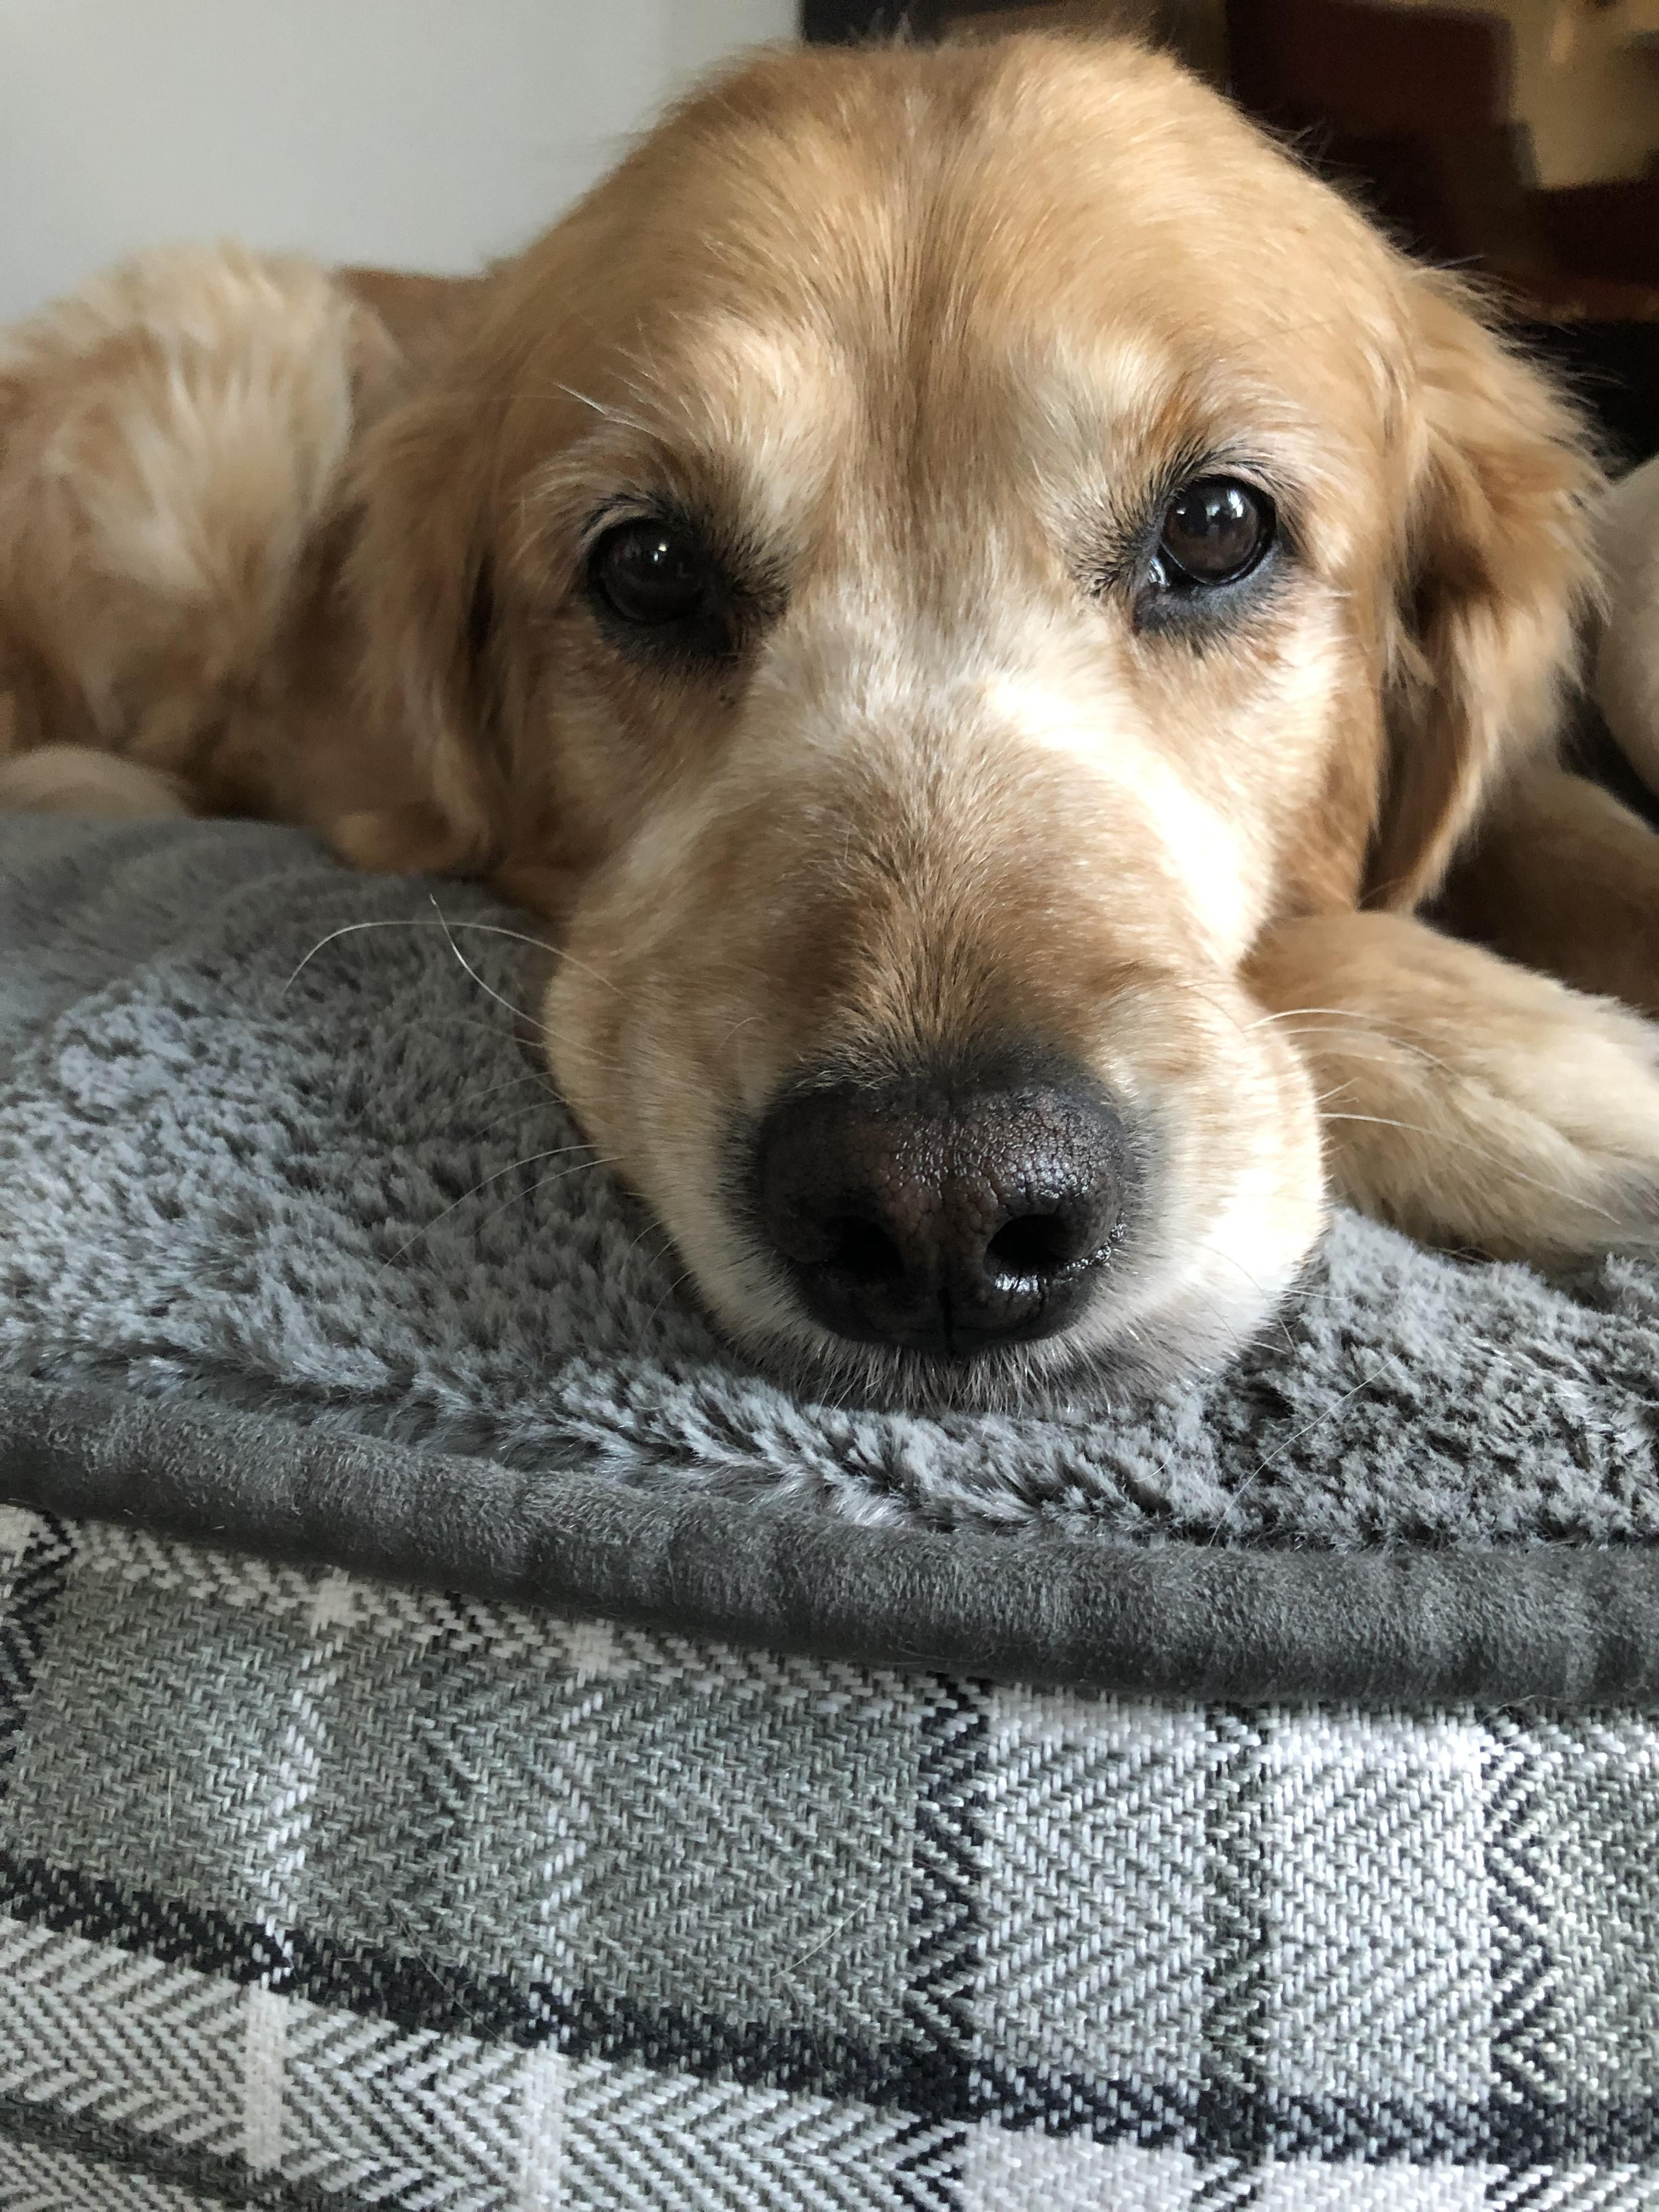 Staring Into Your Soul Animals Beautiful Golden Retriever Puppy Dog Gifs